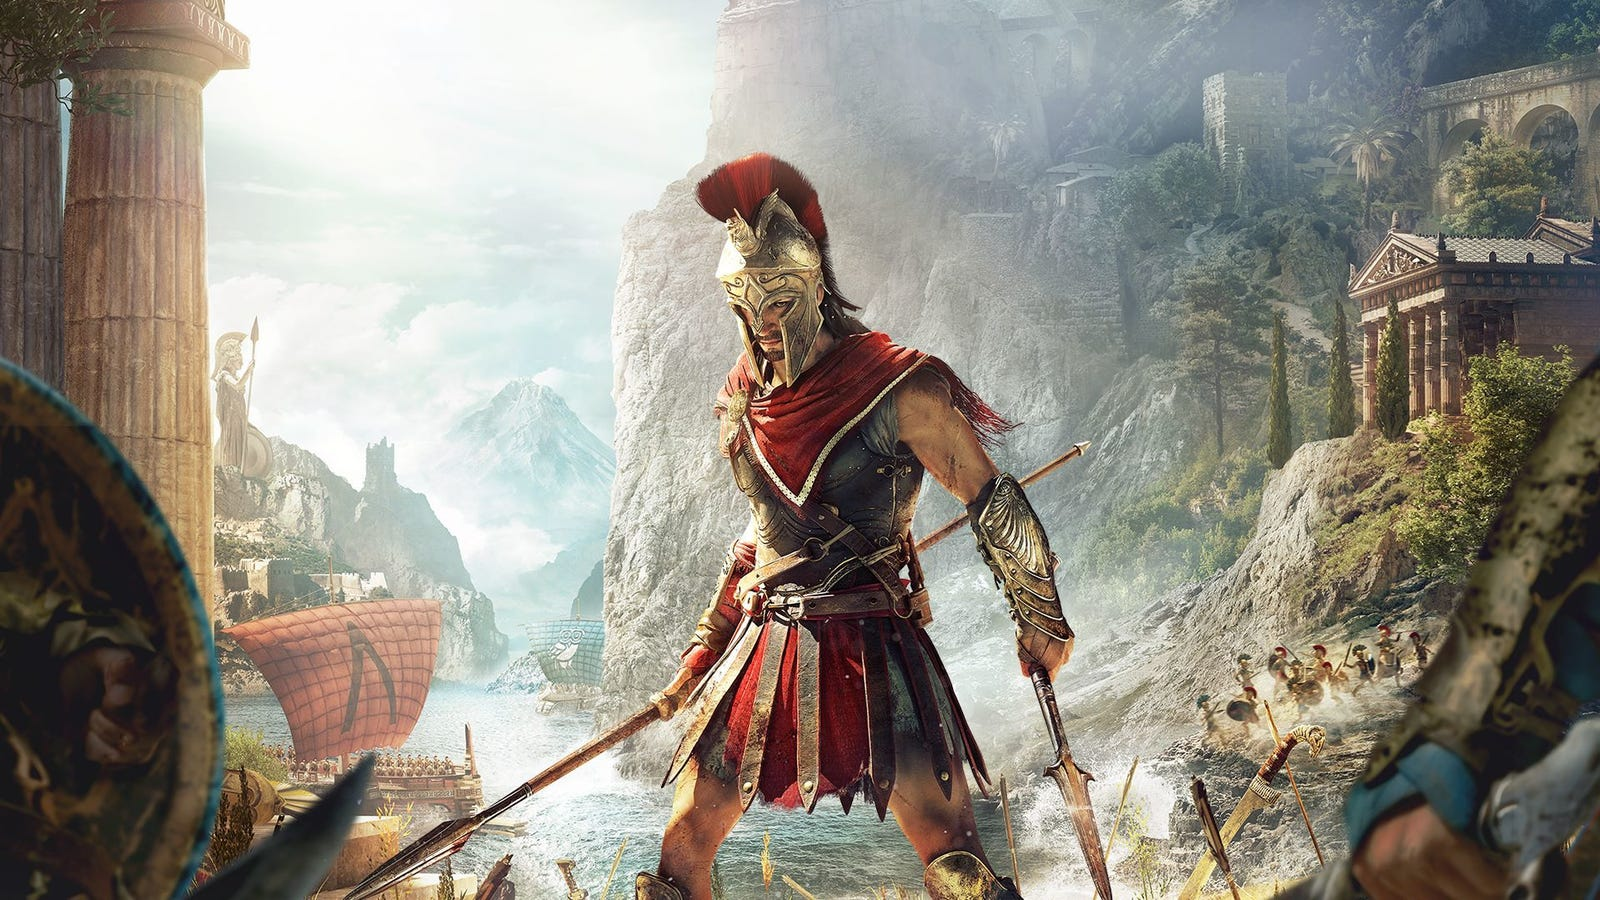 How to Get Assassin's Creed Odyssey for Free